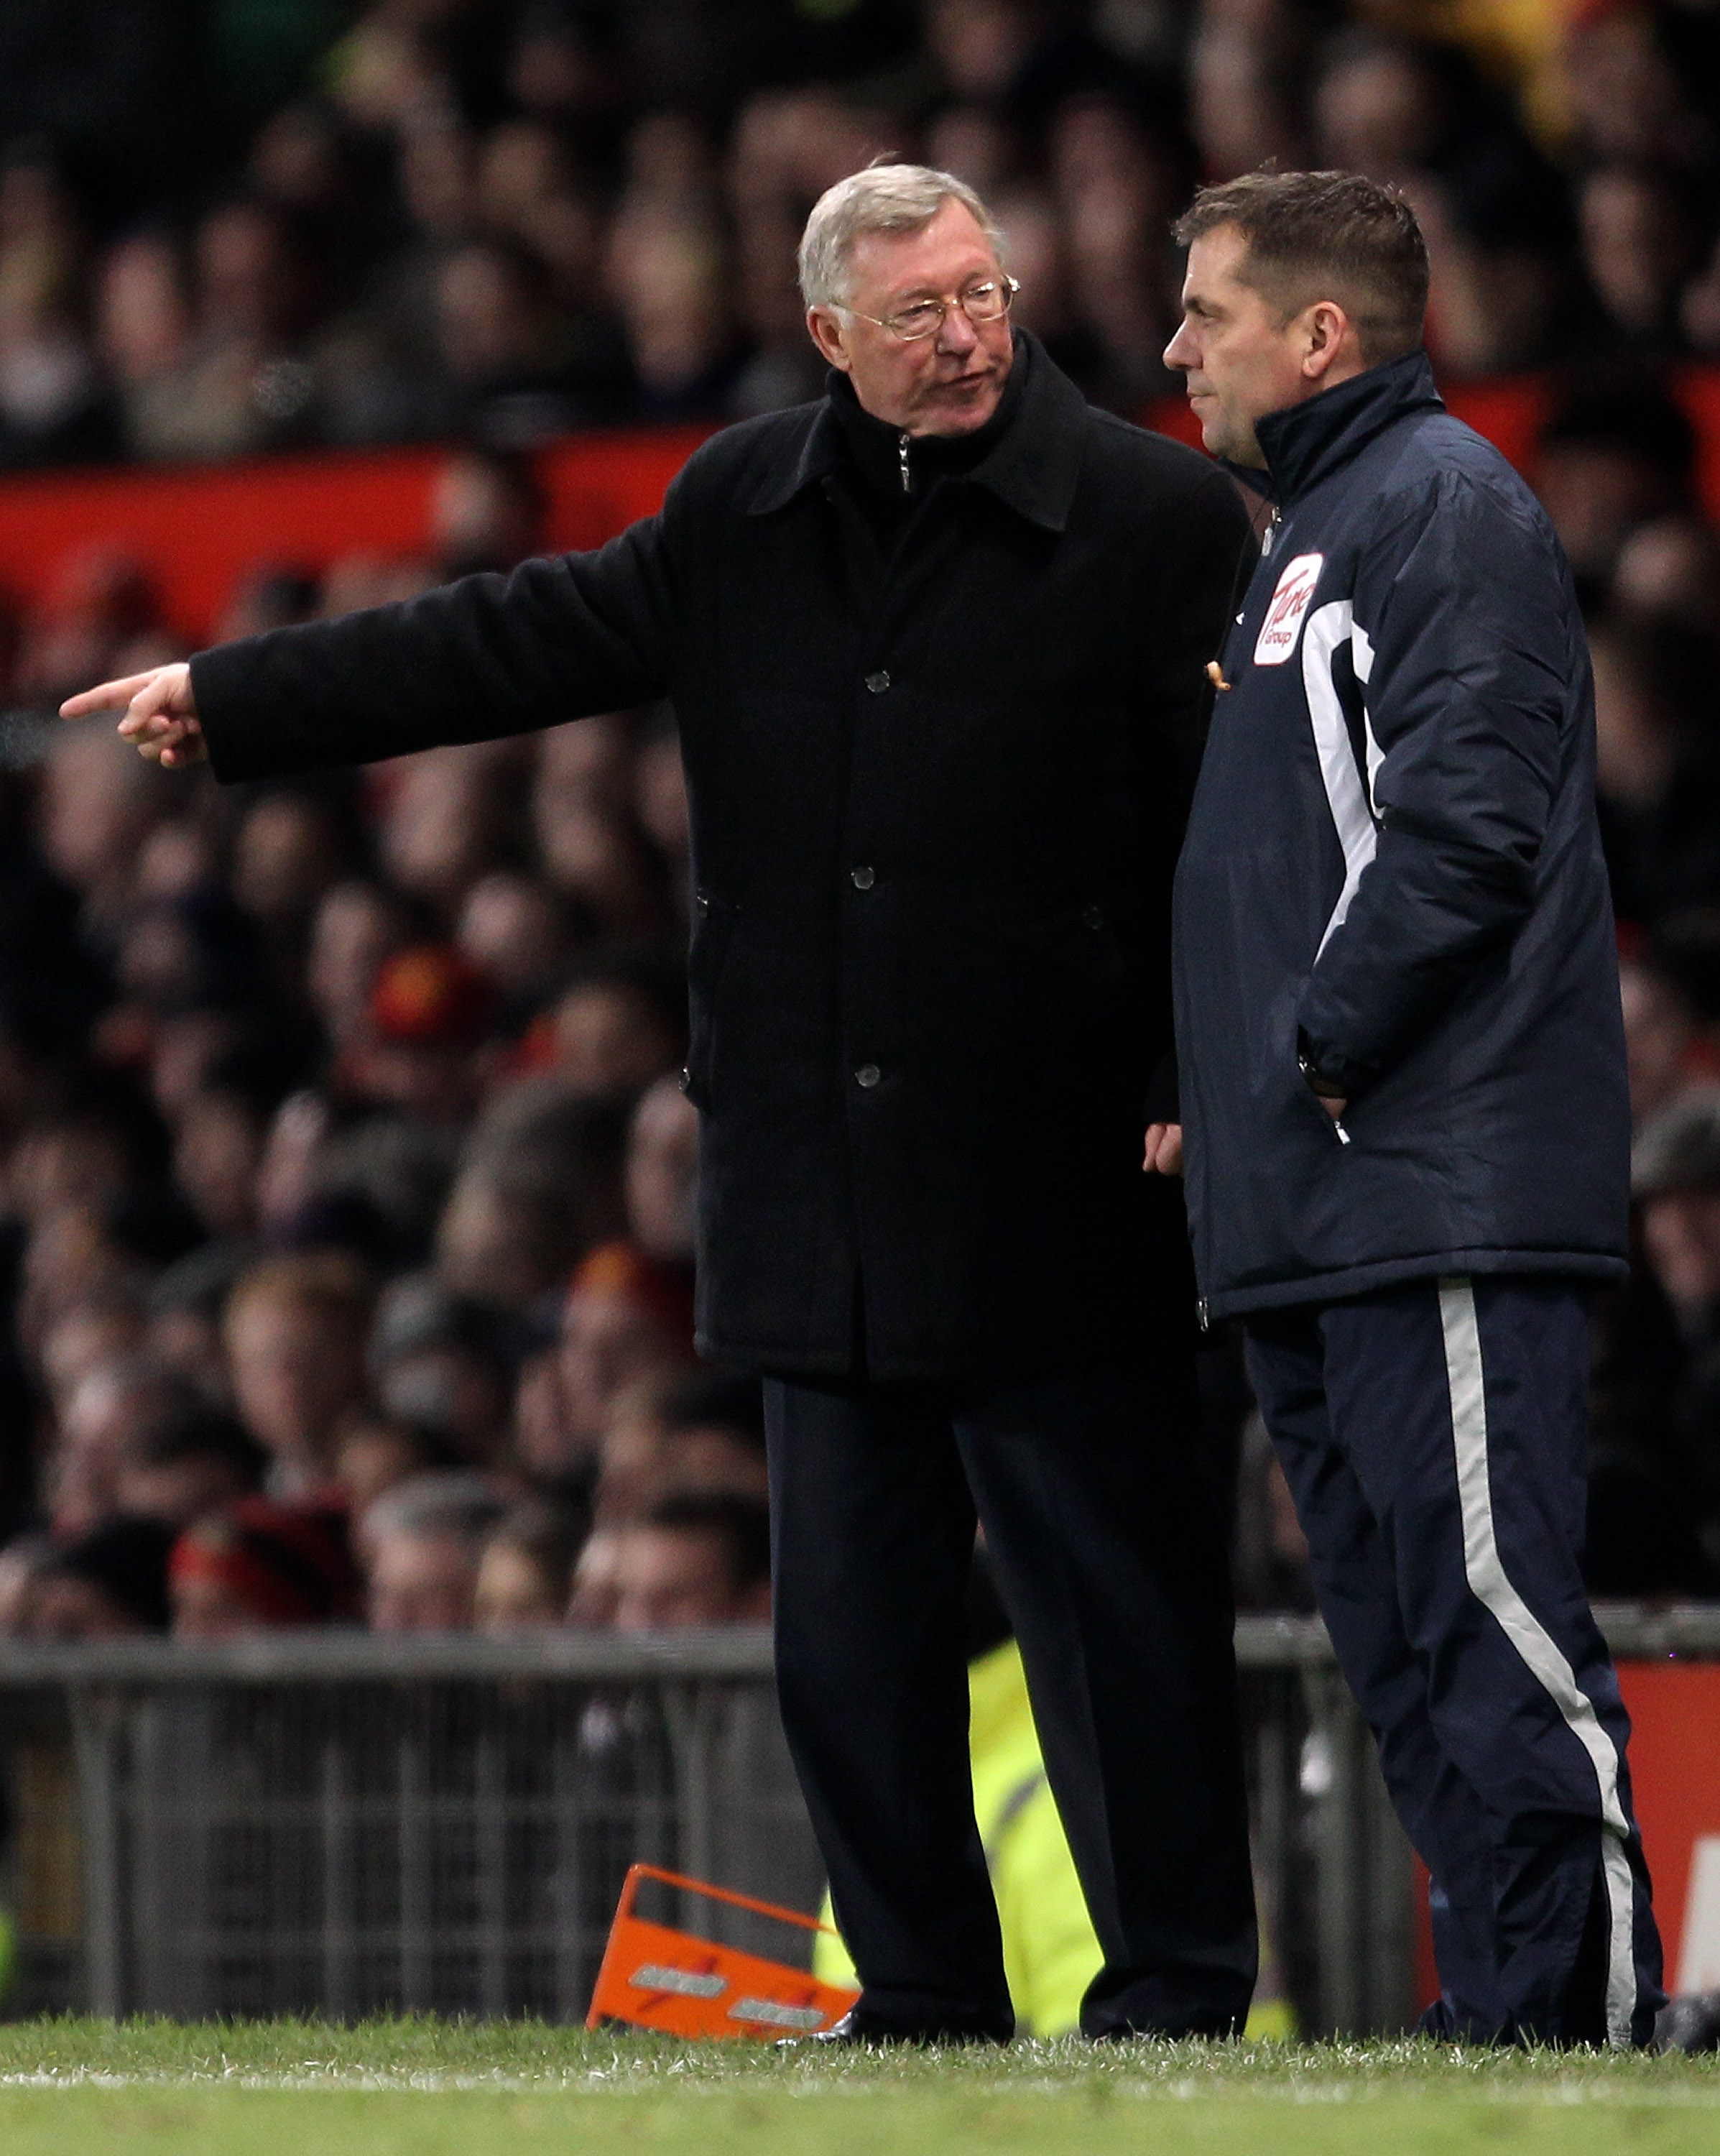 MANCHESTER, ENGLAND - DECEMBER 13:  Manchester United Manager Sir Alex Ferguson protests to Fourth Official Phil Dowd during the Barclays Premier League match between Manchester United and Arsenal at Old Trafford on December 13, 2010 in Manchester, Englan